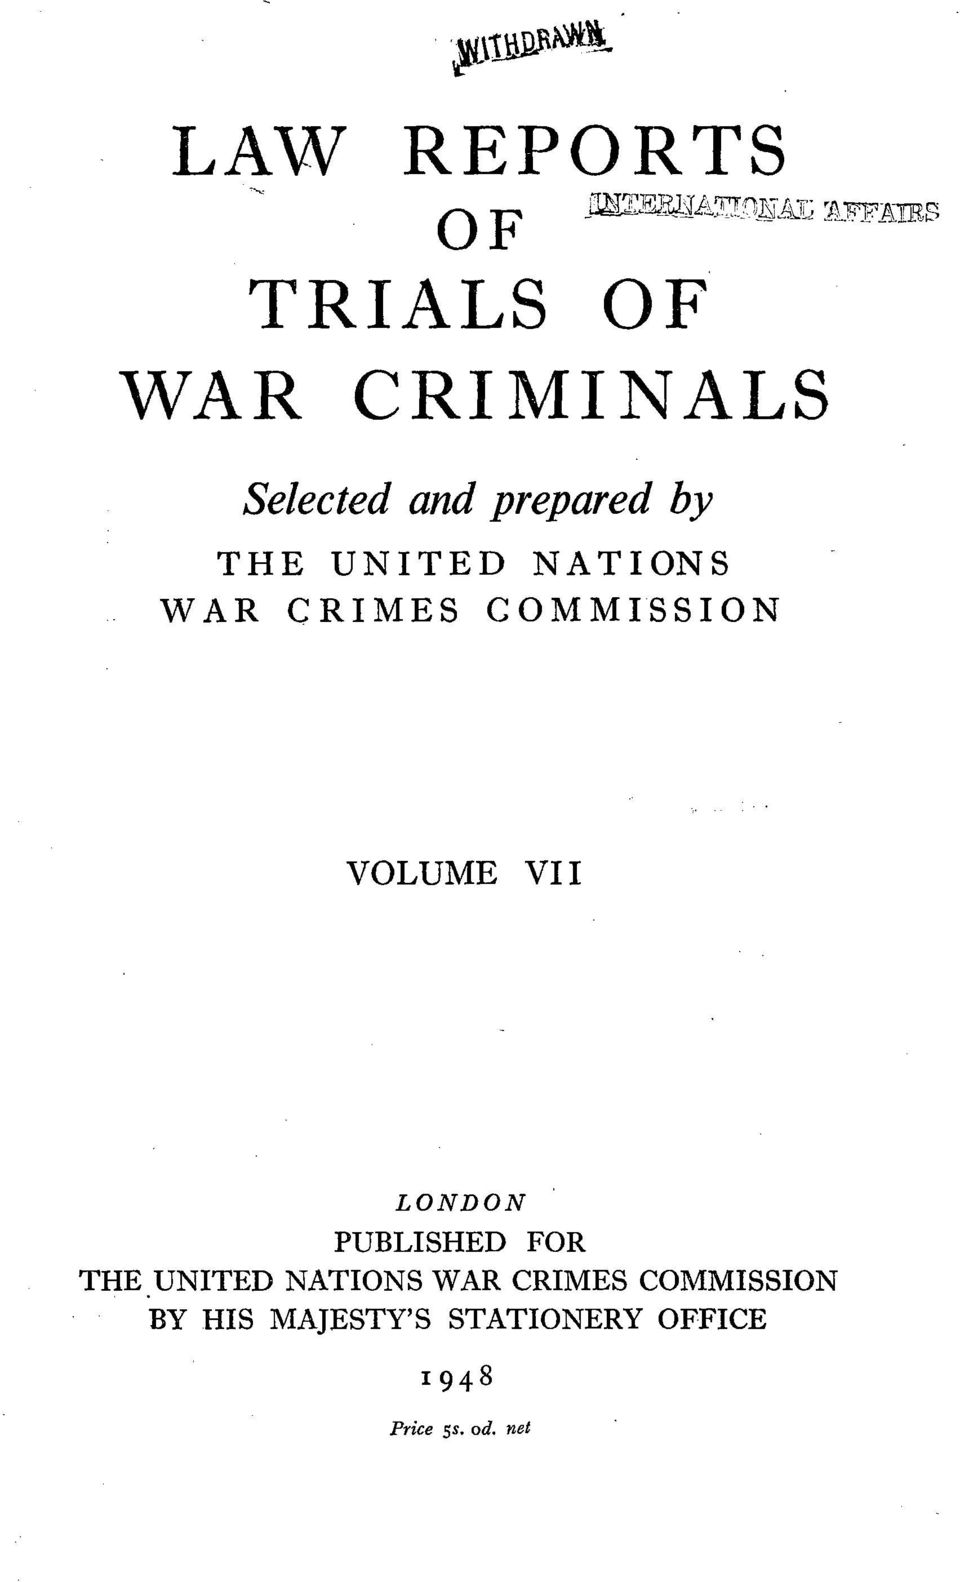 UNITED NATIONS WAR C RIMESC 0 M M IS S ION VOLUME VII LONDON